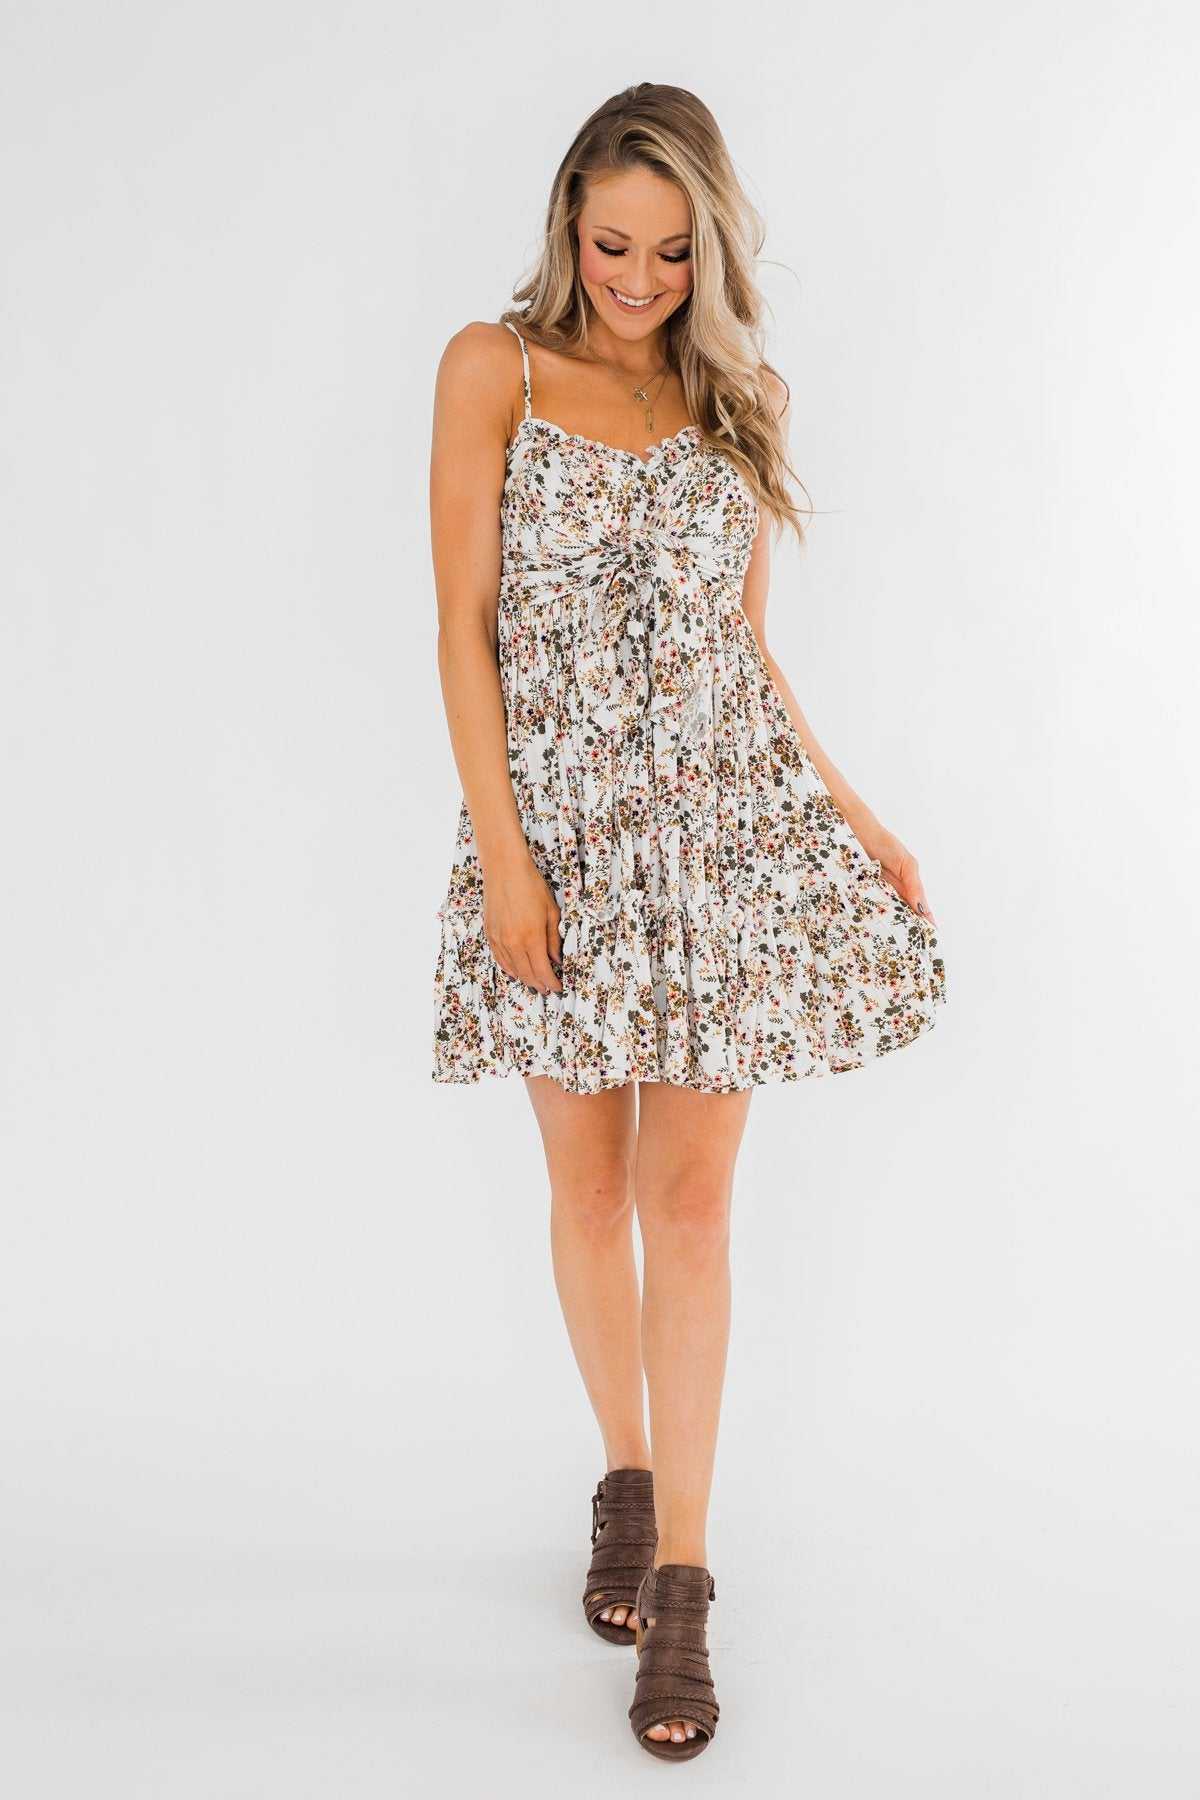 Saying Goodbye Floral Tie Dress- Ivory